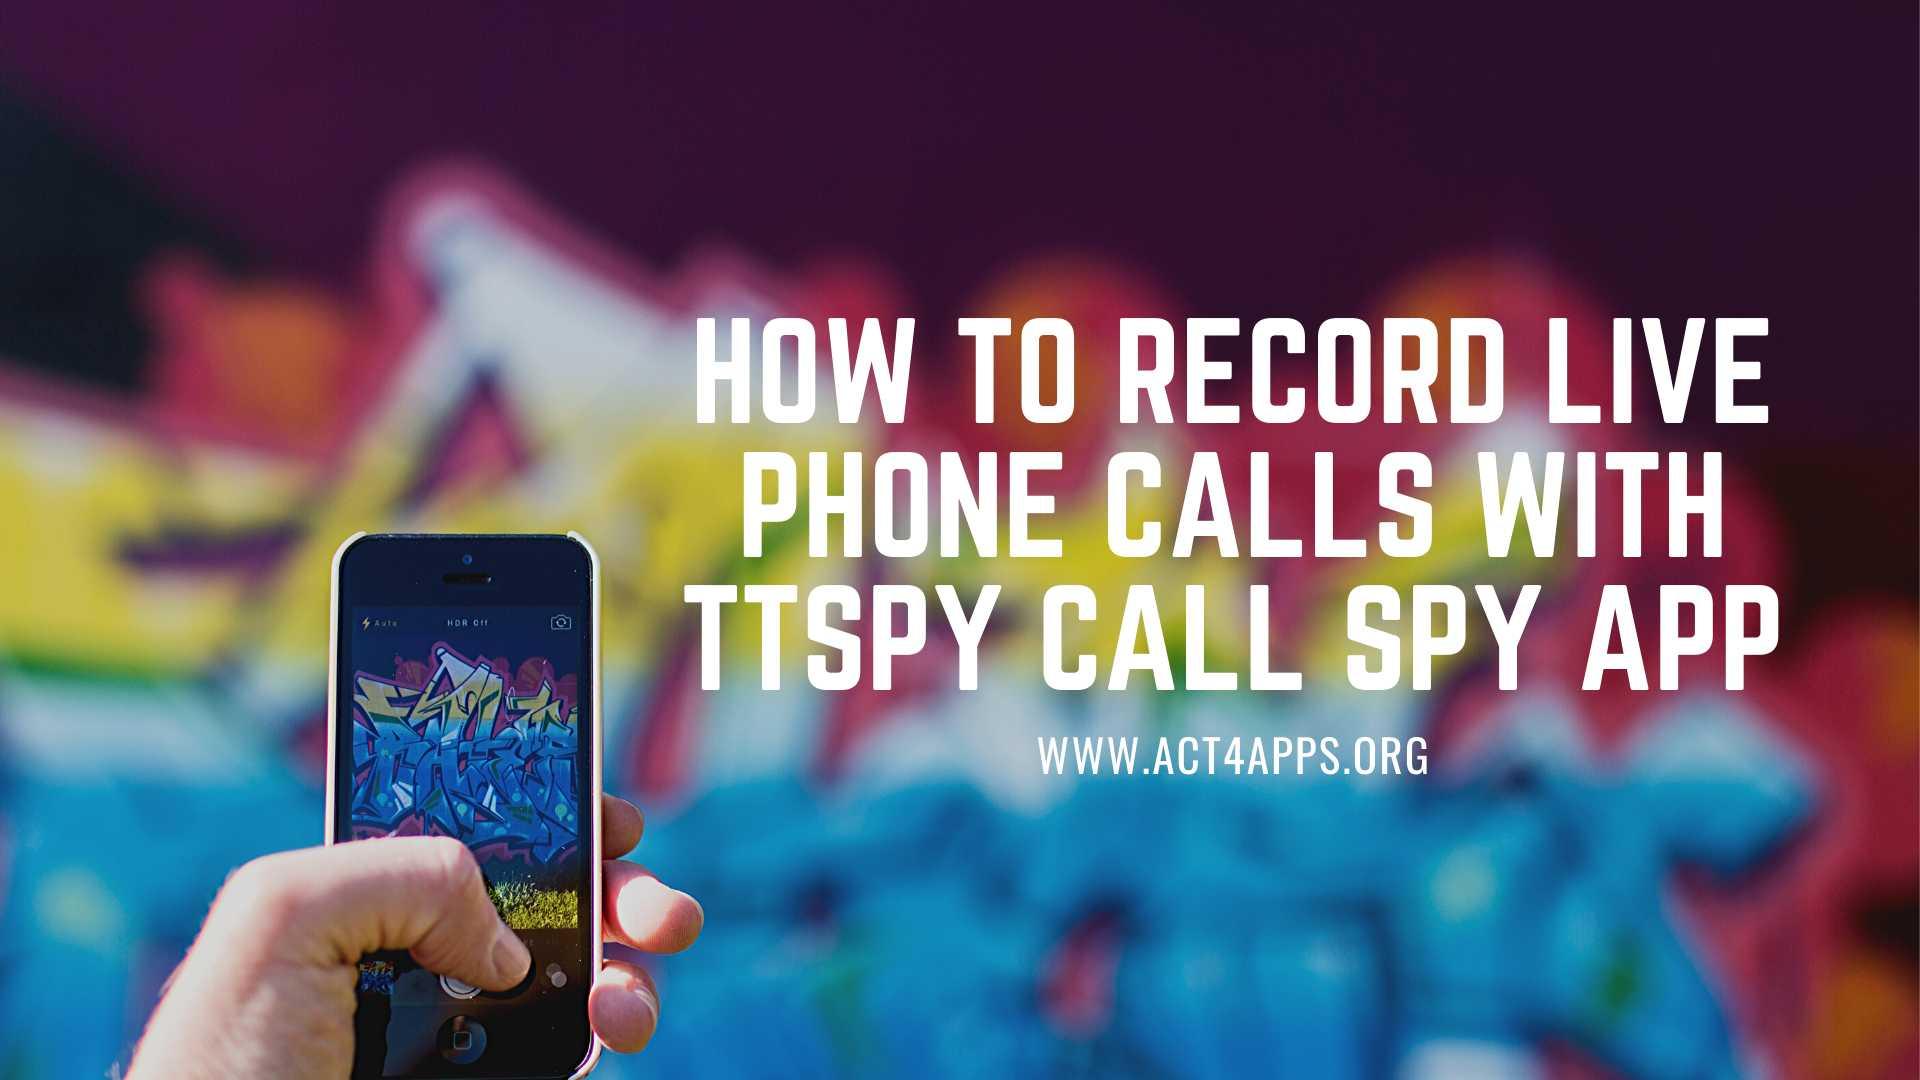 How to Record Live Phone Calls with TTSPY Call Spy App